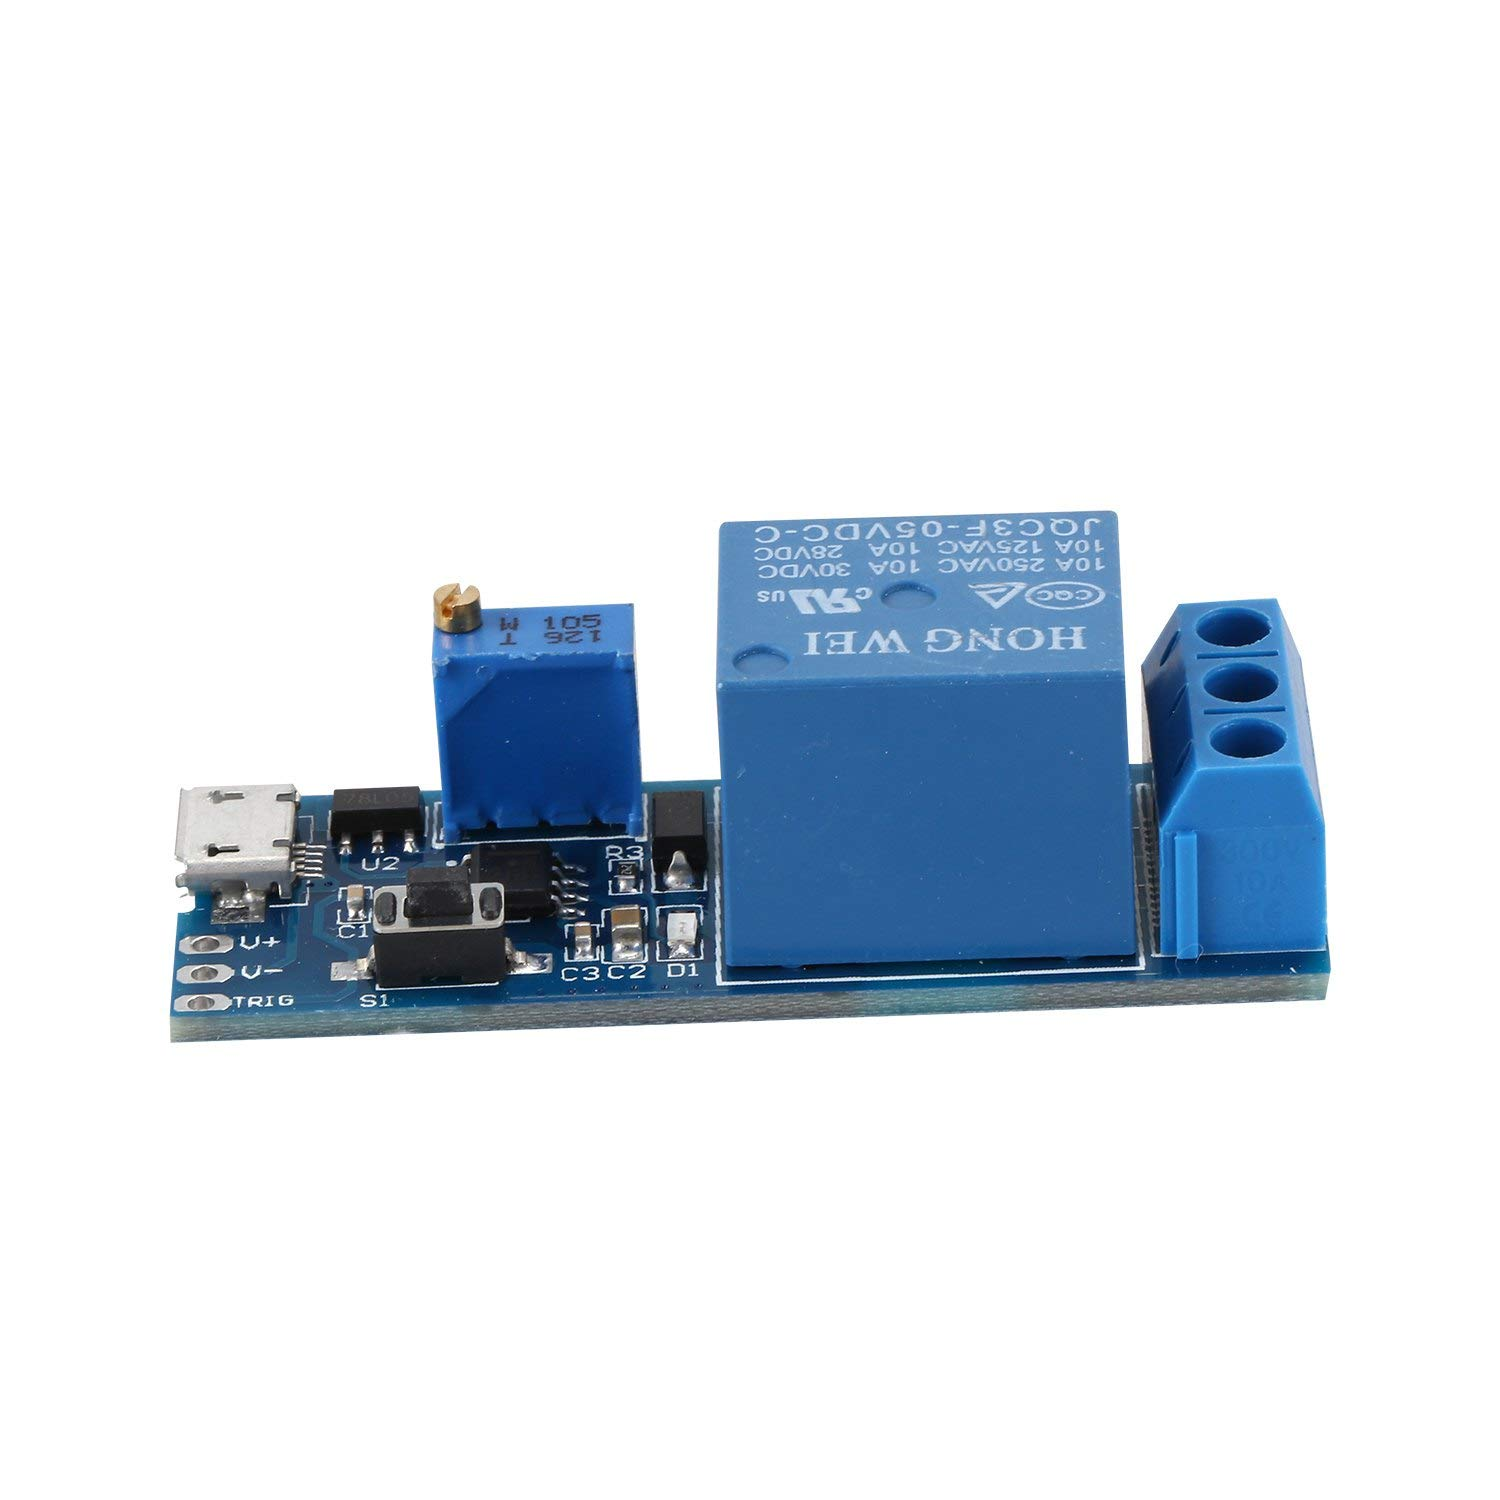 TOOGOO(R) Wide voltage 5V-30V trigger delay relay module, timer module, time delay switch